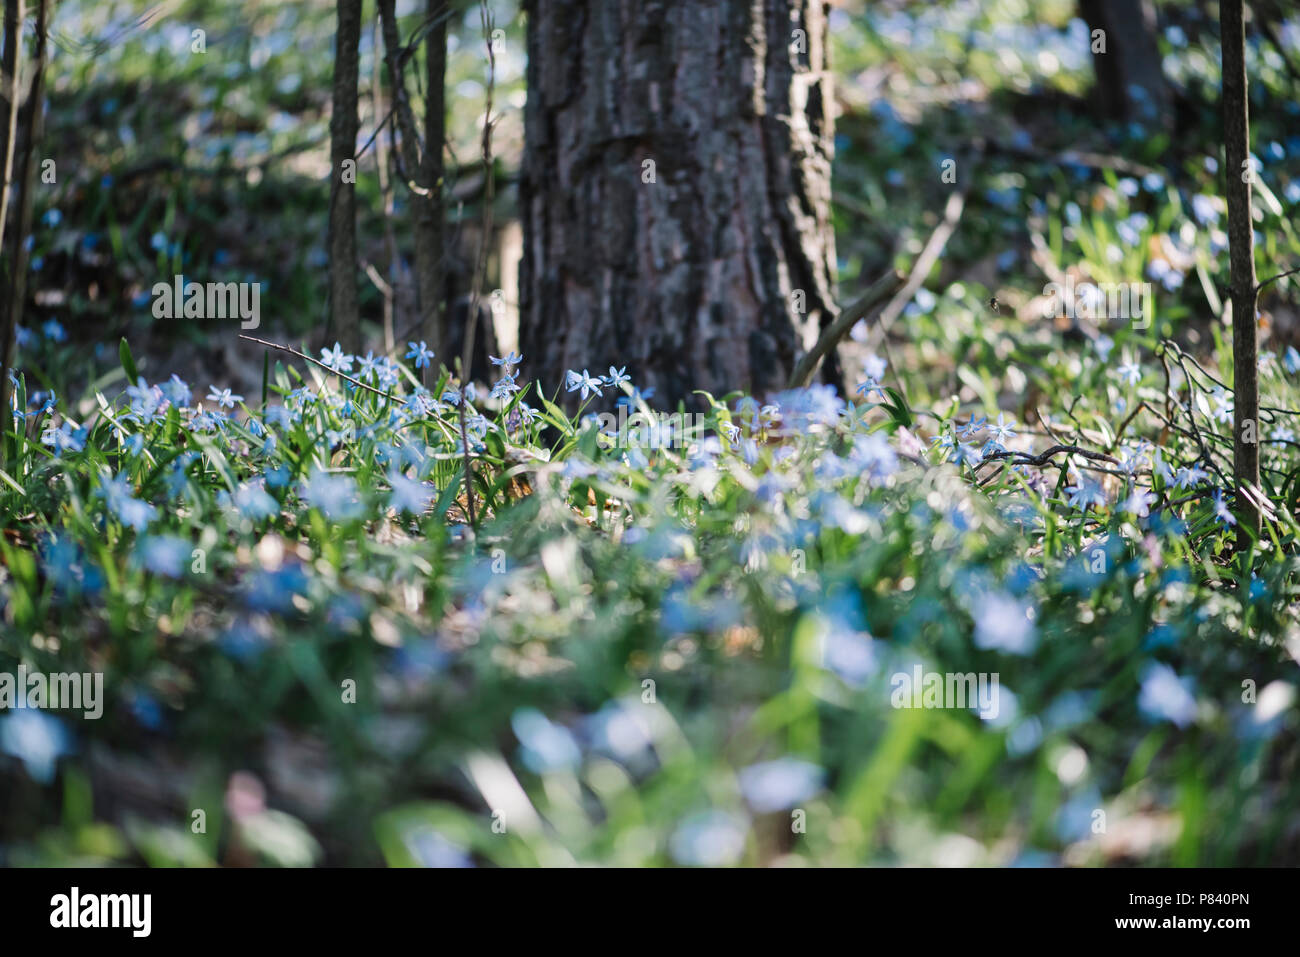 Beautiful Spring Forest With Blossoming Scilla Siberica Flowers